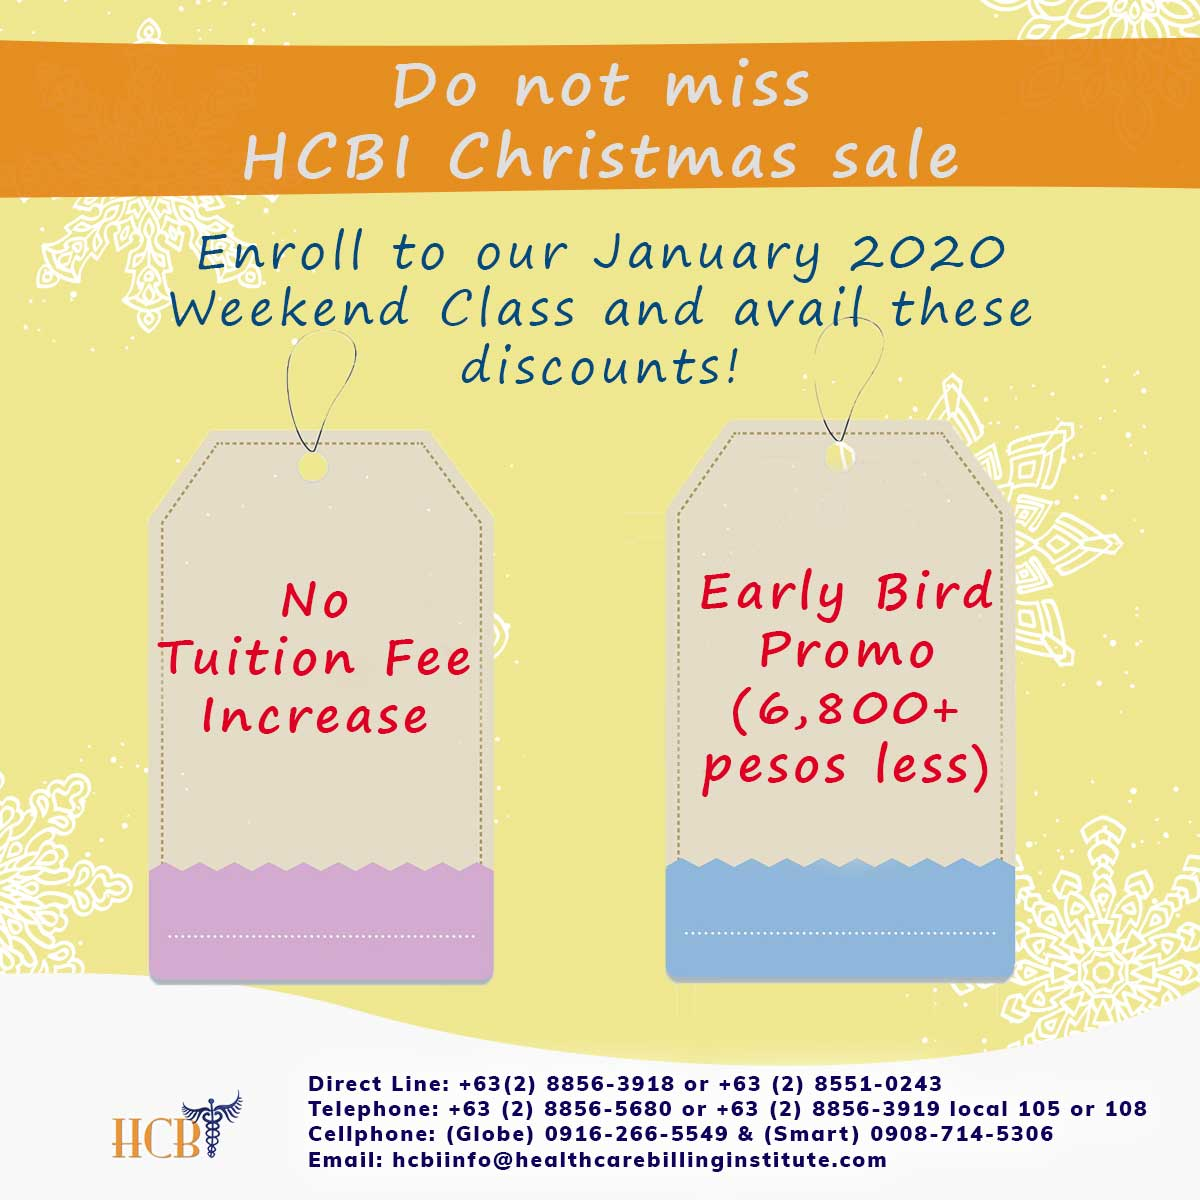 Christmas Sale JWE, hcbi